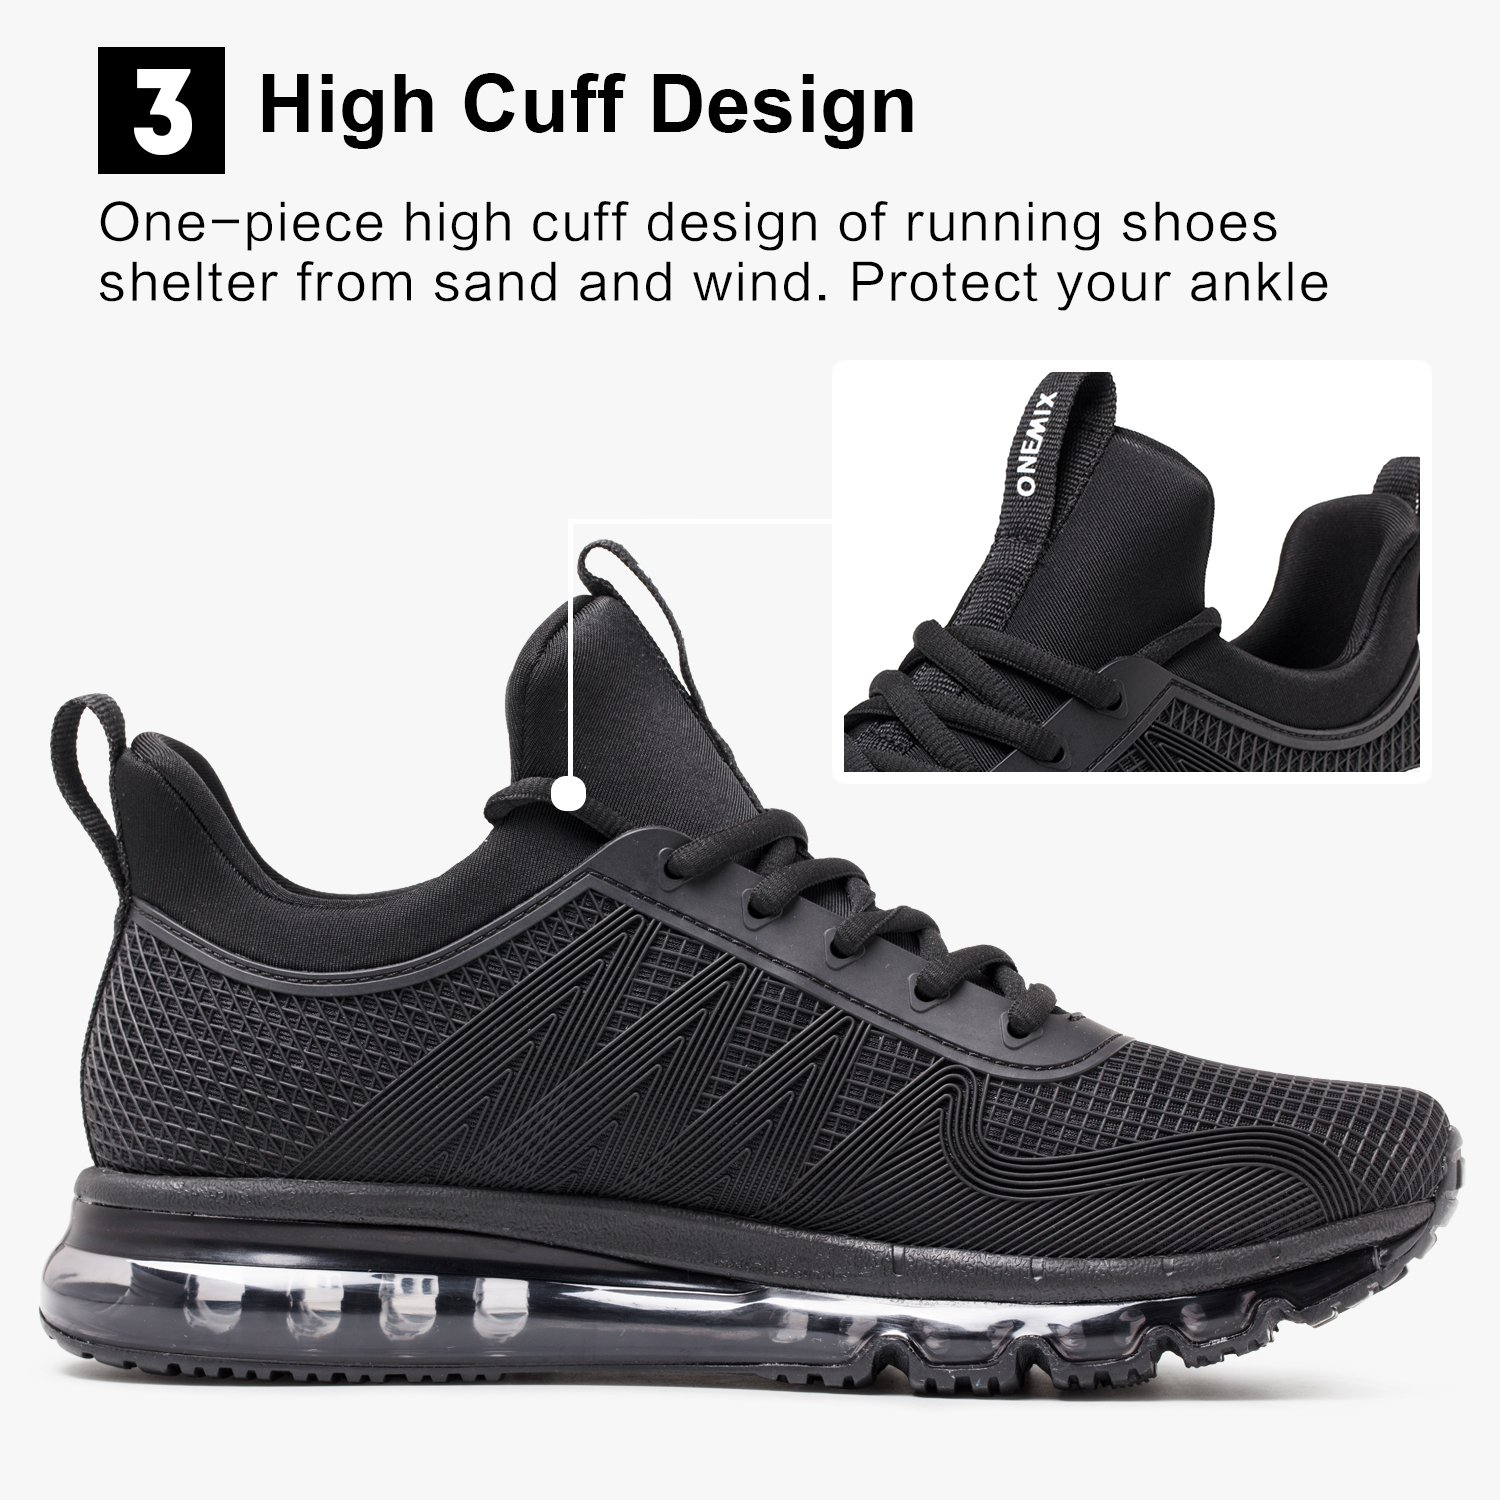 ONEMIX Running Shoes Breathable Air Cushion Sports Shoes Lightweight Outdoor Sneakers for Men and Women B07F25Z3V1 Women 5.5B(M)US=8.86inch Black